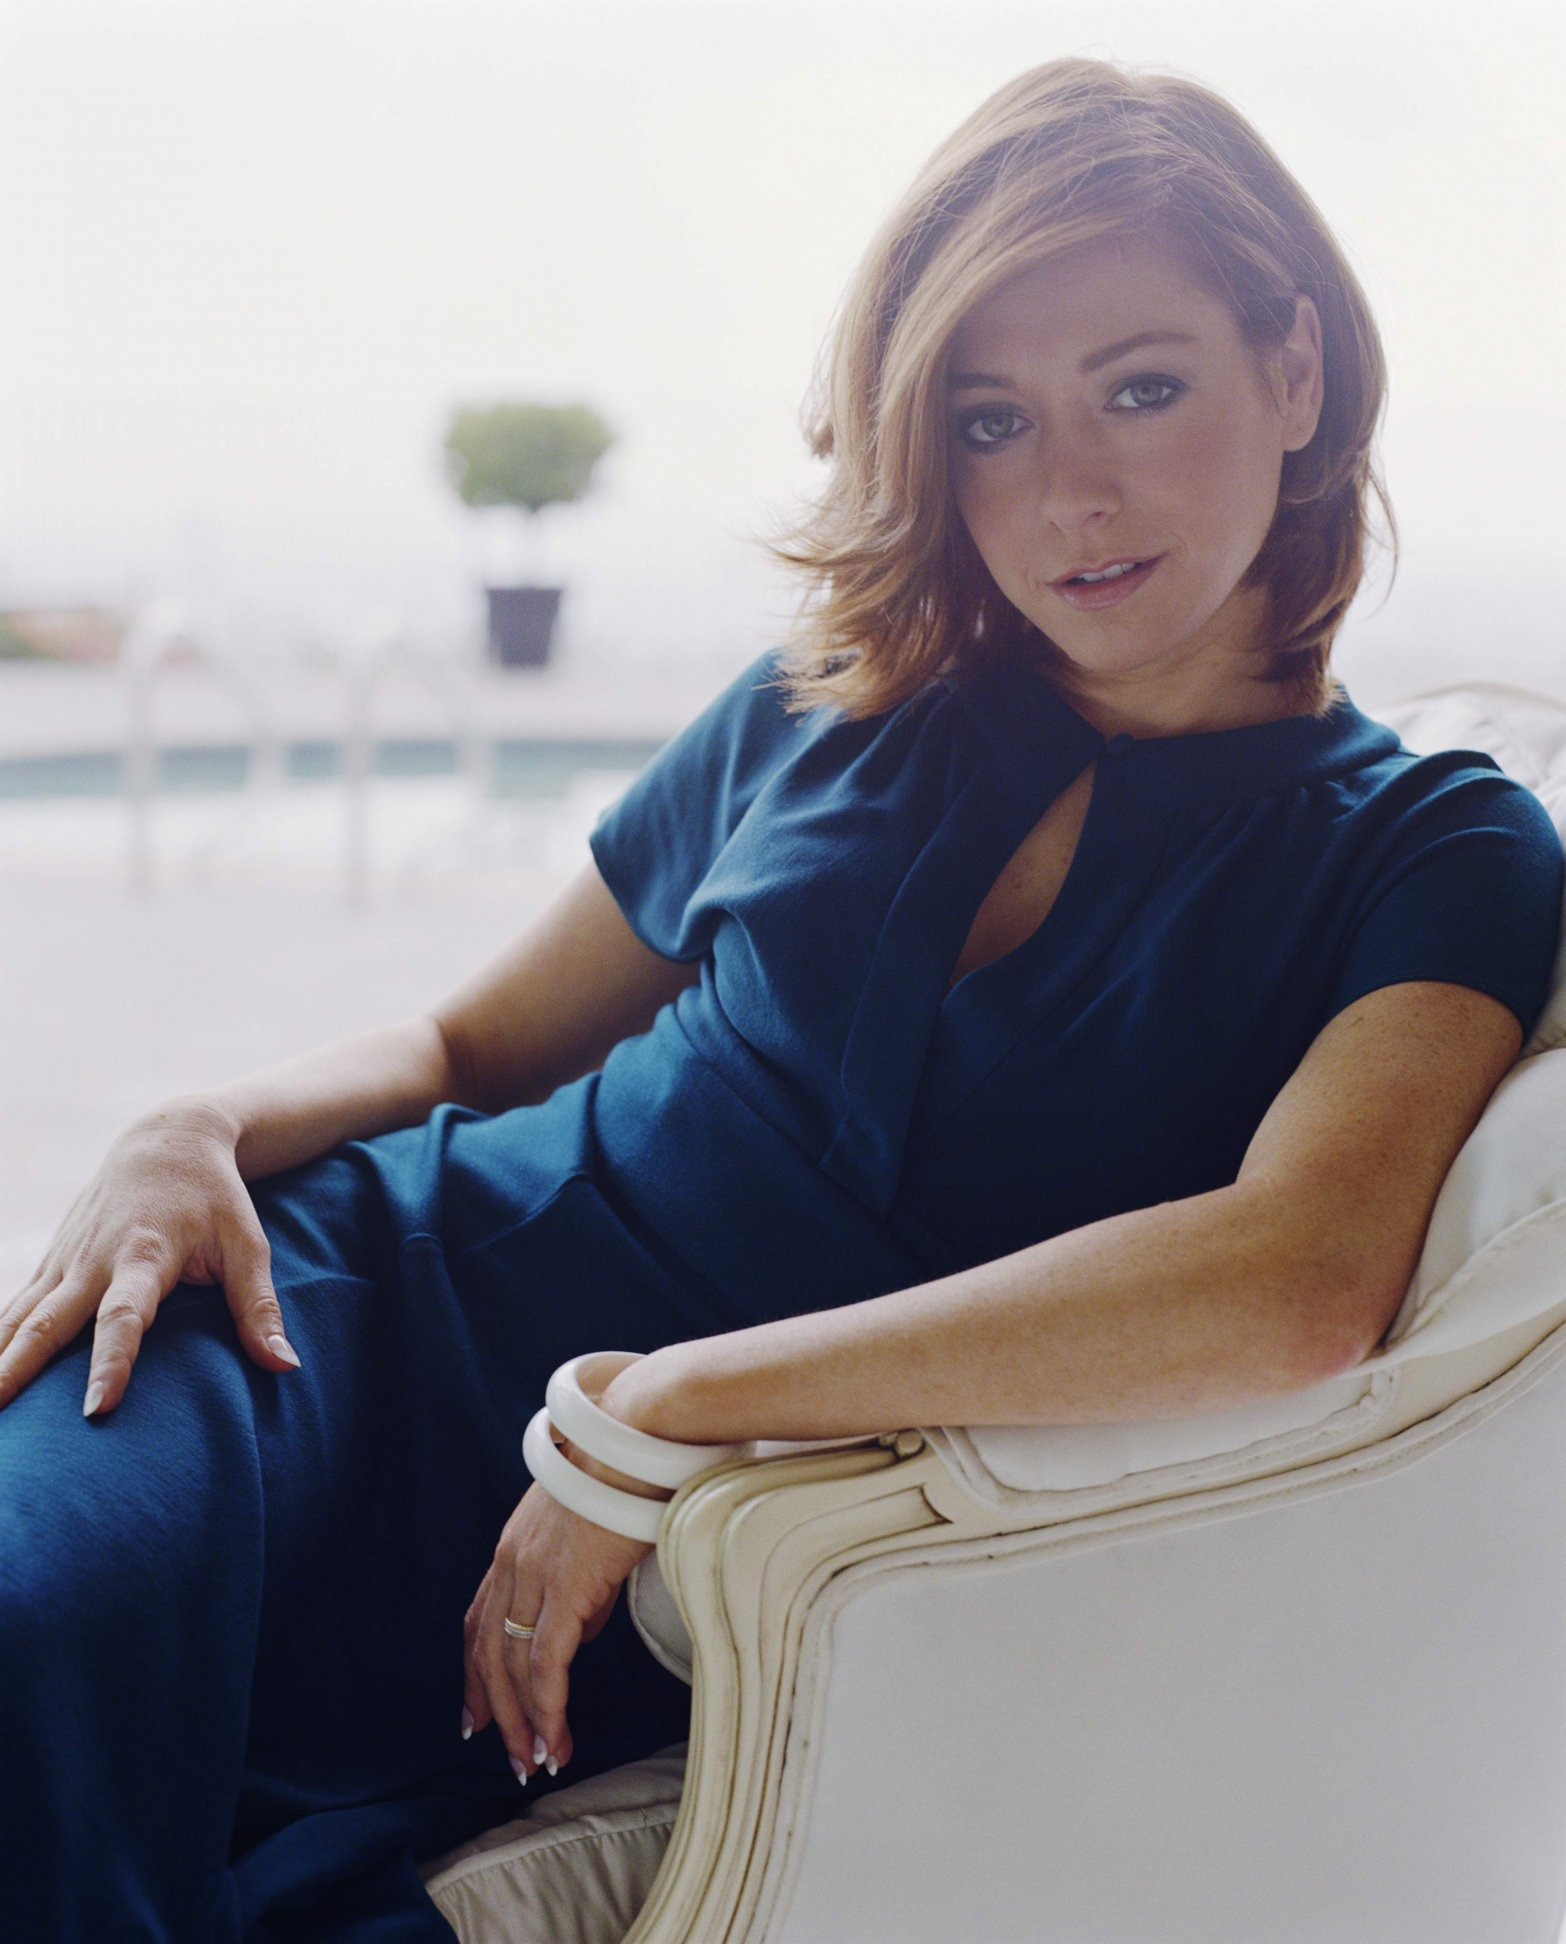 ICloud Alyson Hannigan nude (95 foto and video), Tits, Fappening, Instagram, swimsuit 2017